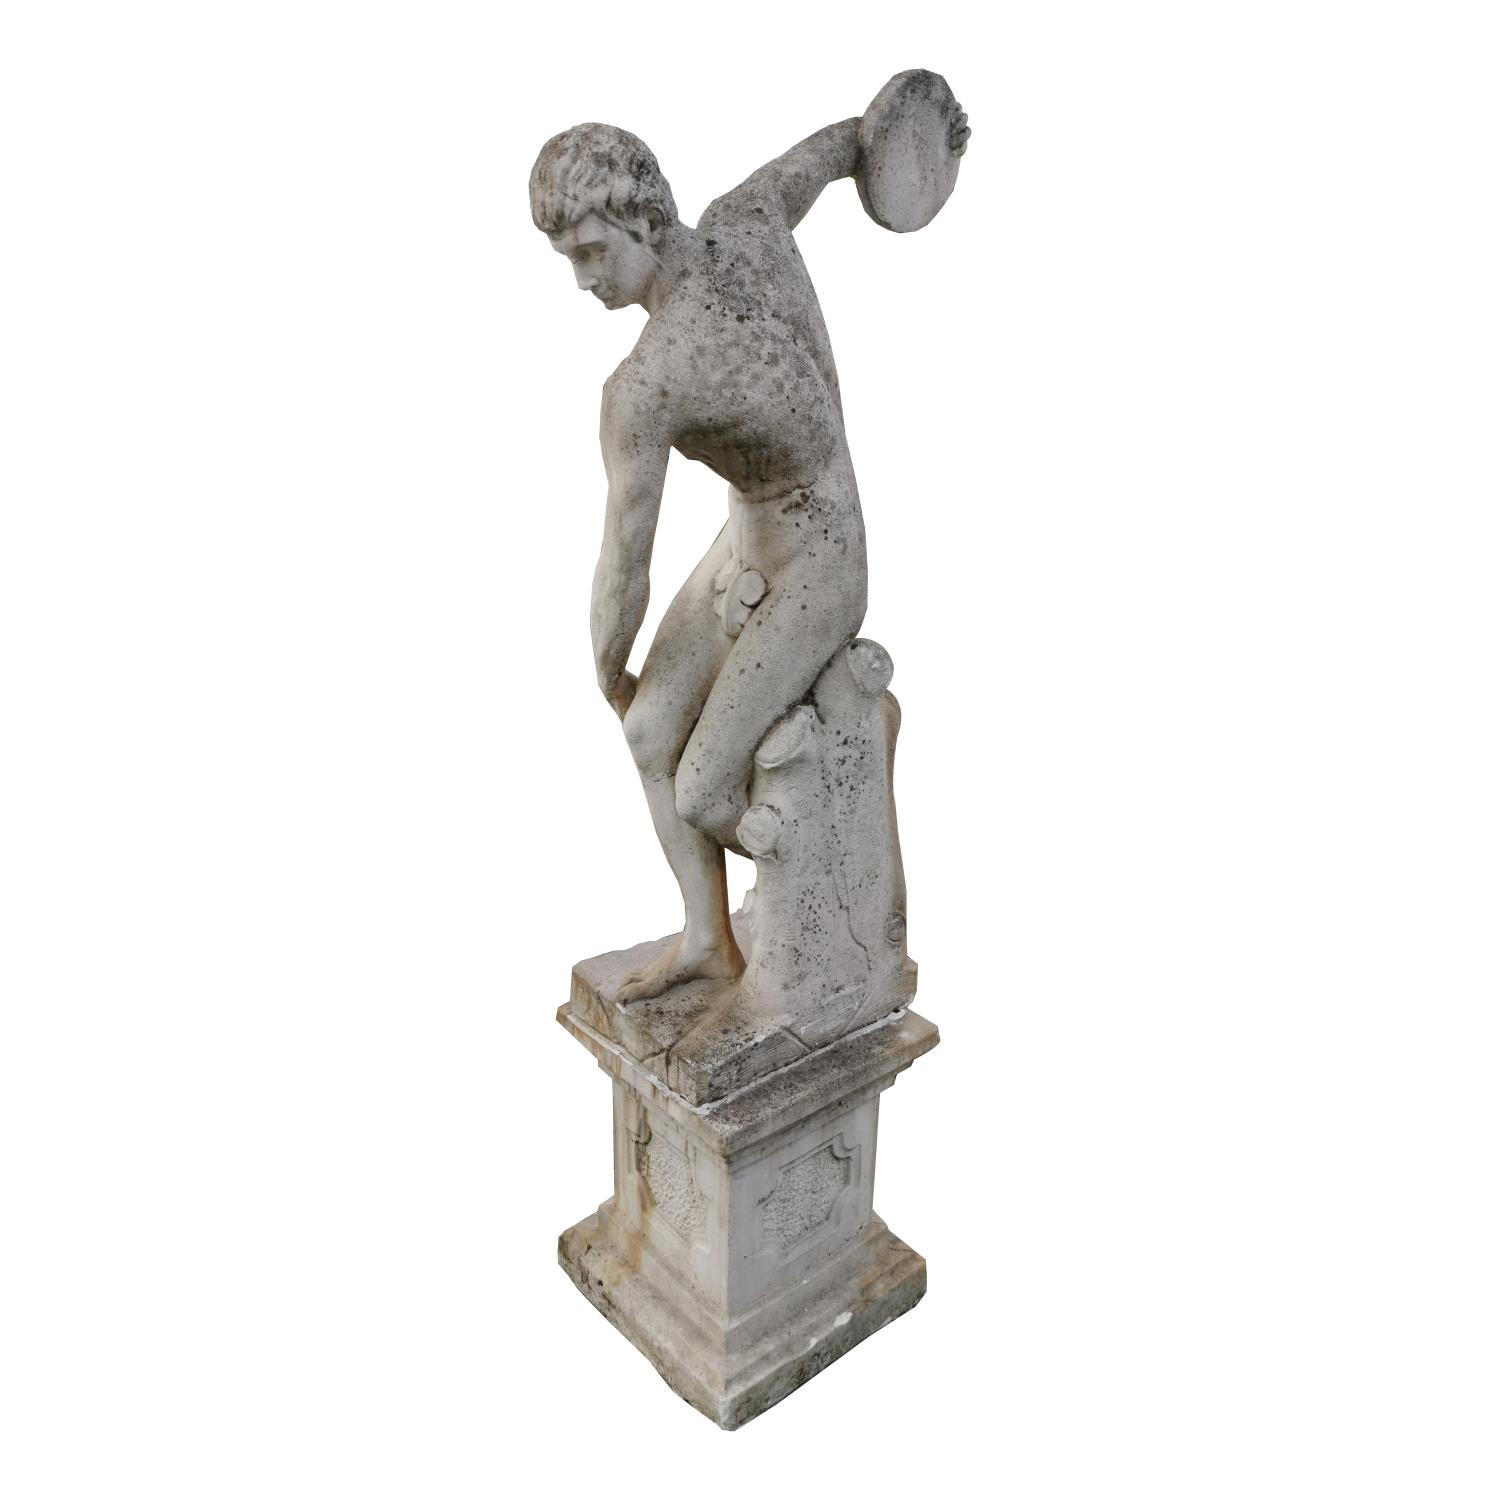 Moulded stone statue of Greek Disc Thrower - Image 5 of 5